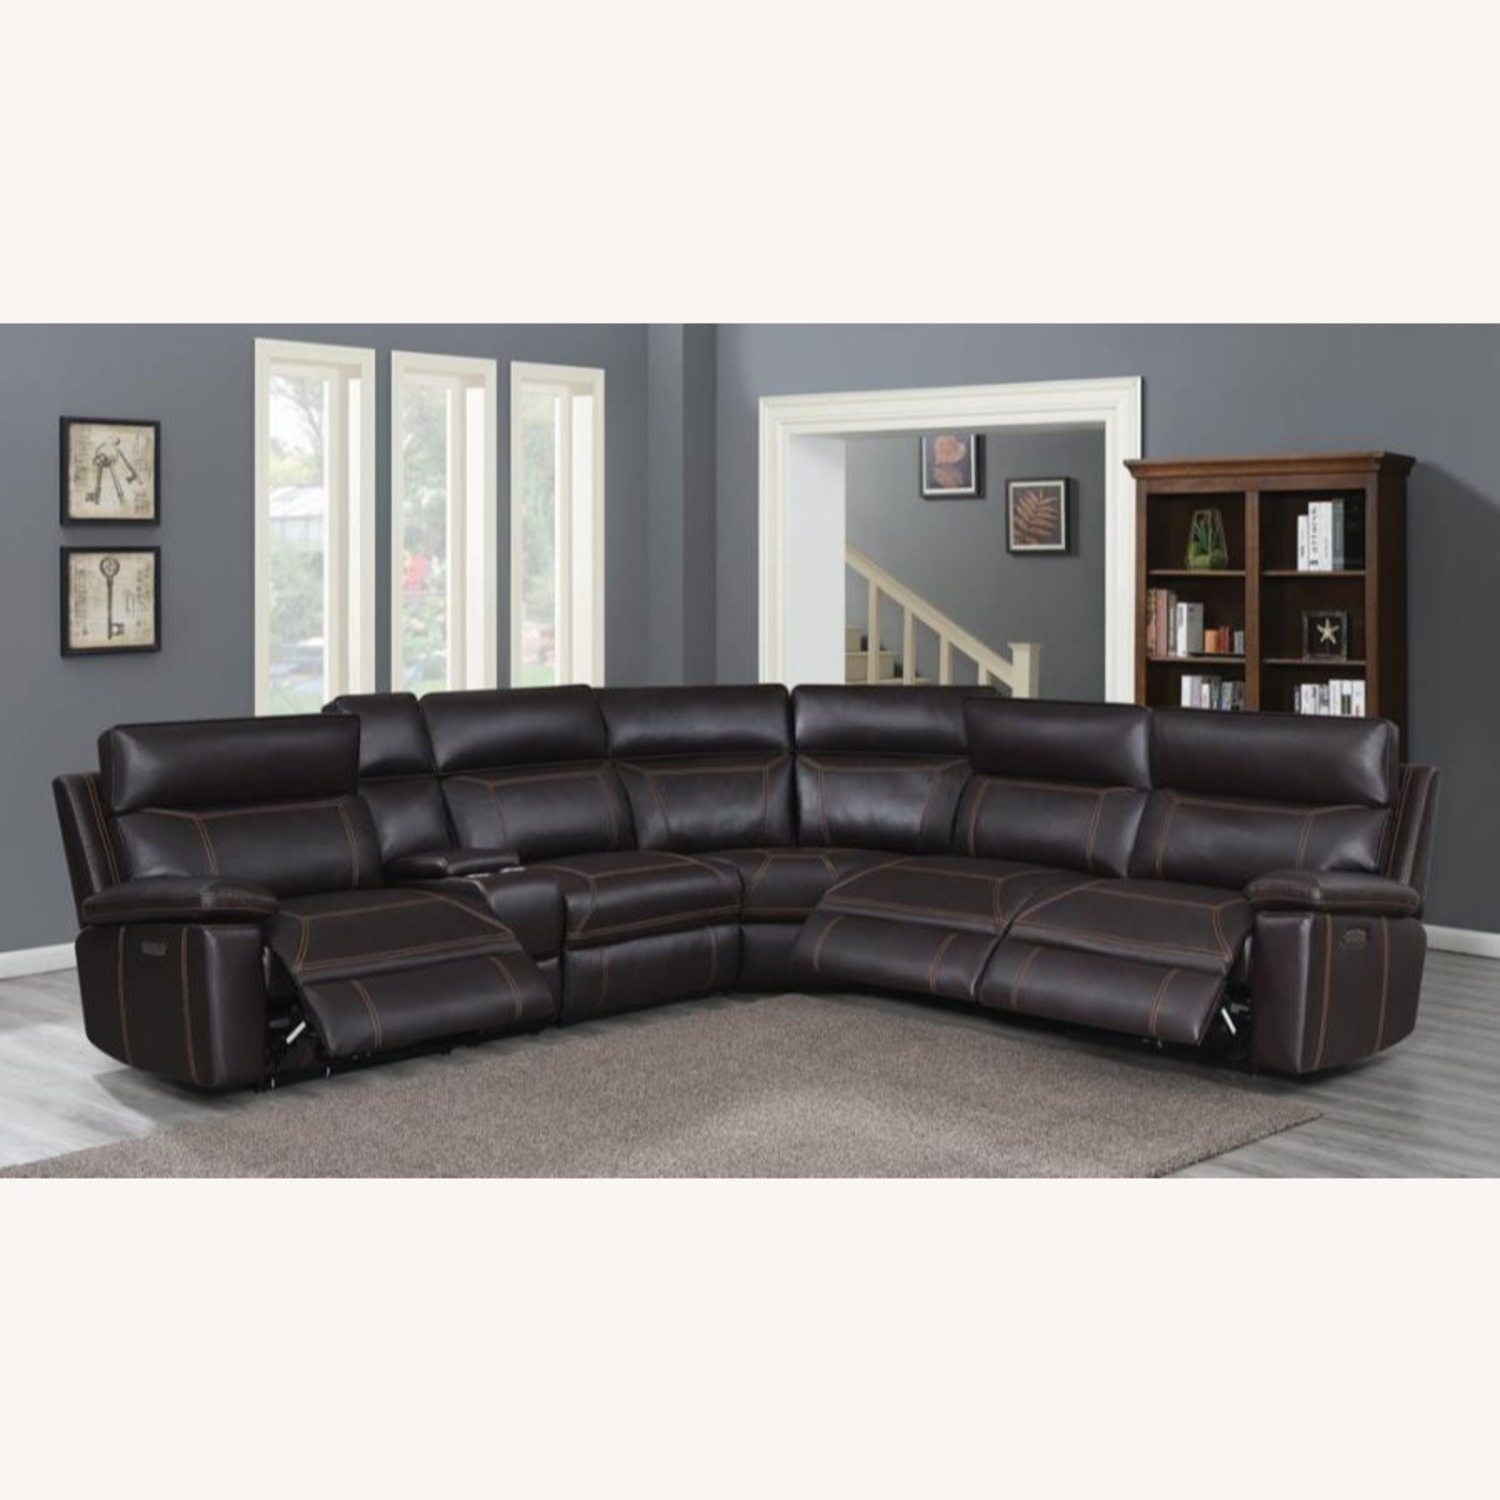 6-Piece Power2 Sectional In Brown Leatherette - image-9